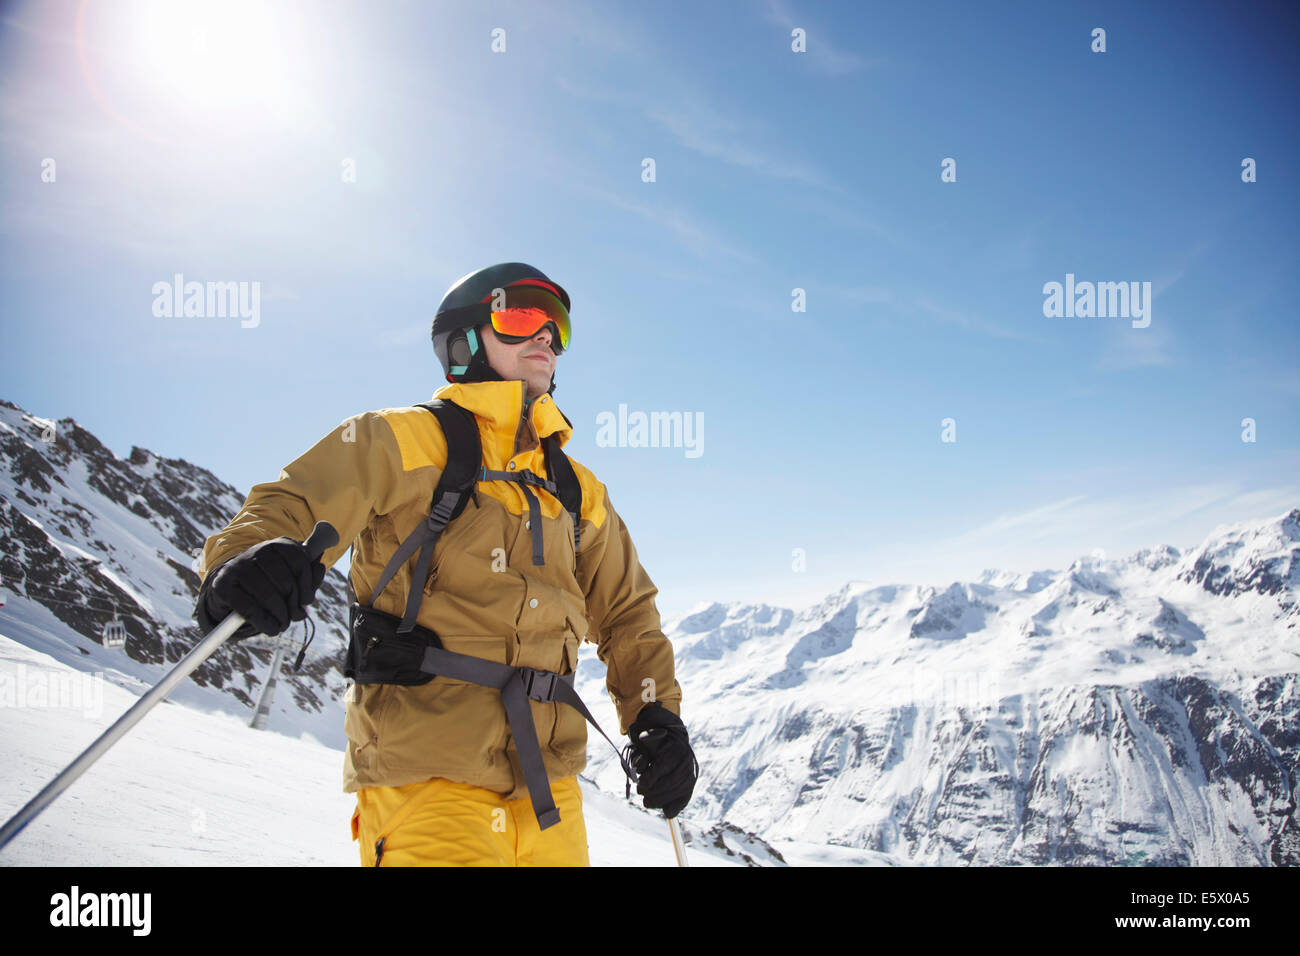 Low angle view of mid adult male skier on mountain, Autriche Photo Stock